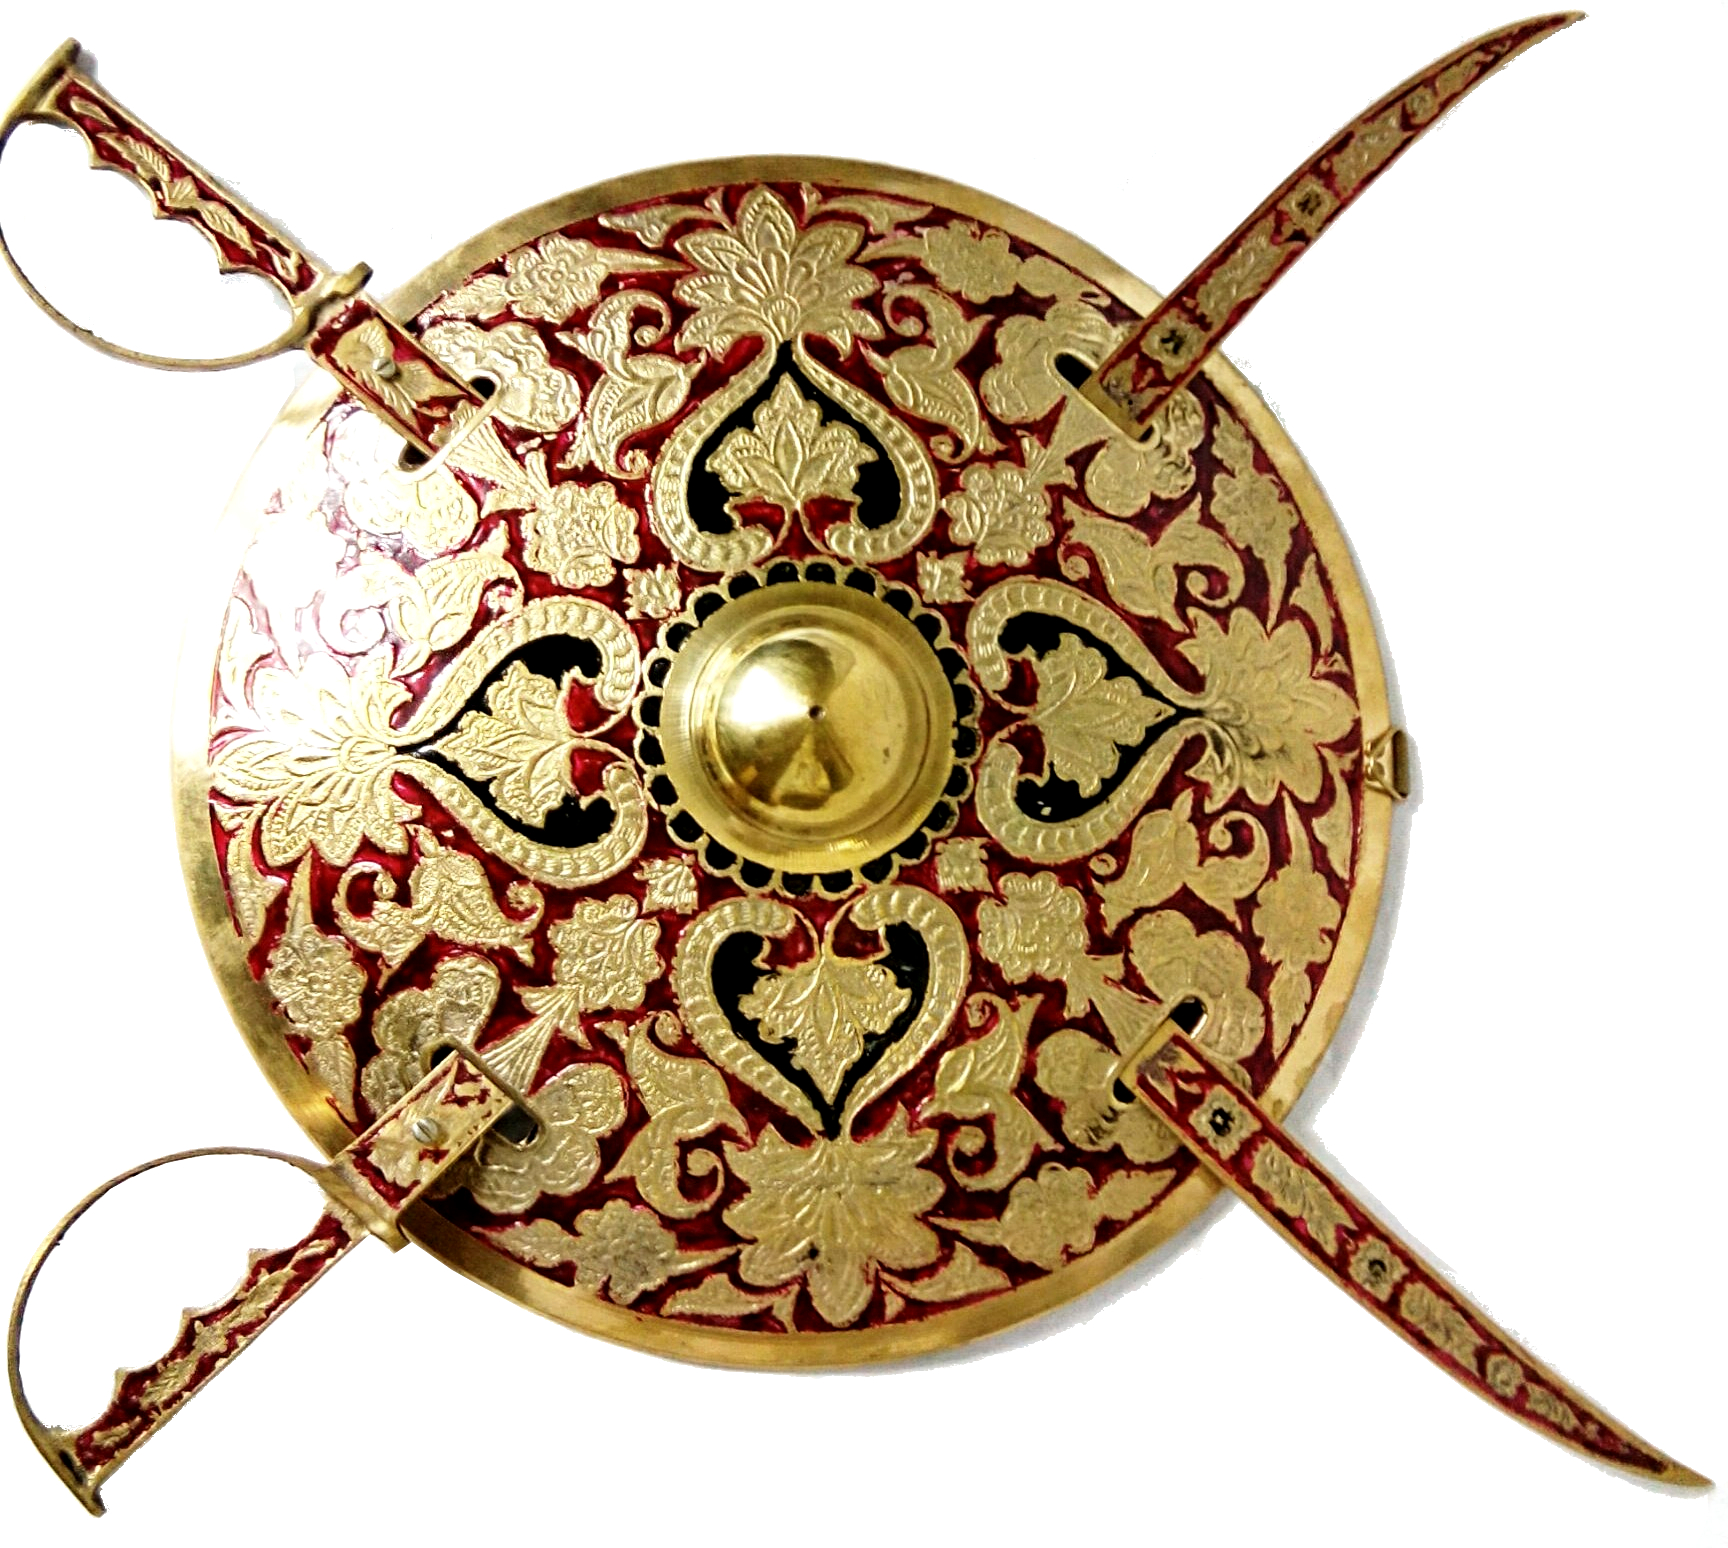 Rajasthani Maharaja Antique Brass Sword Shield Set - Antikcart